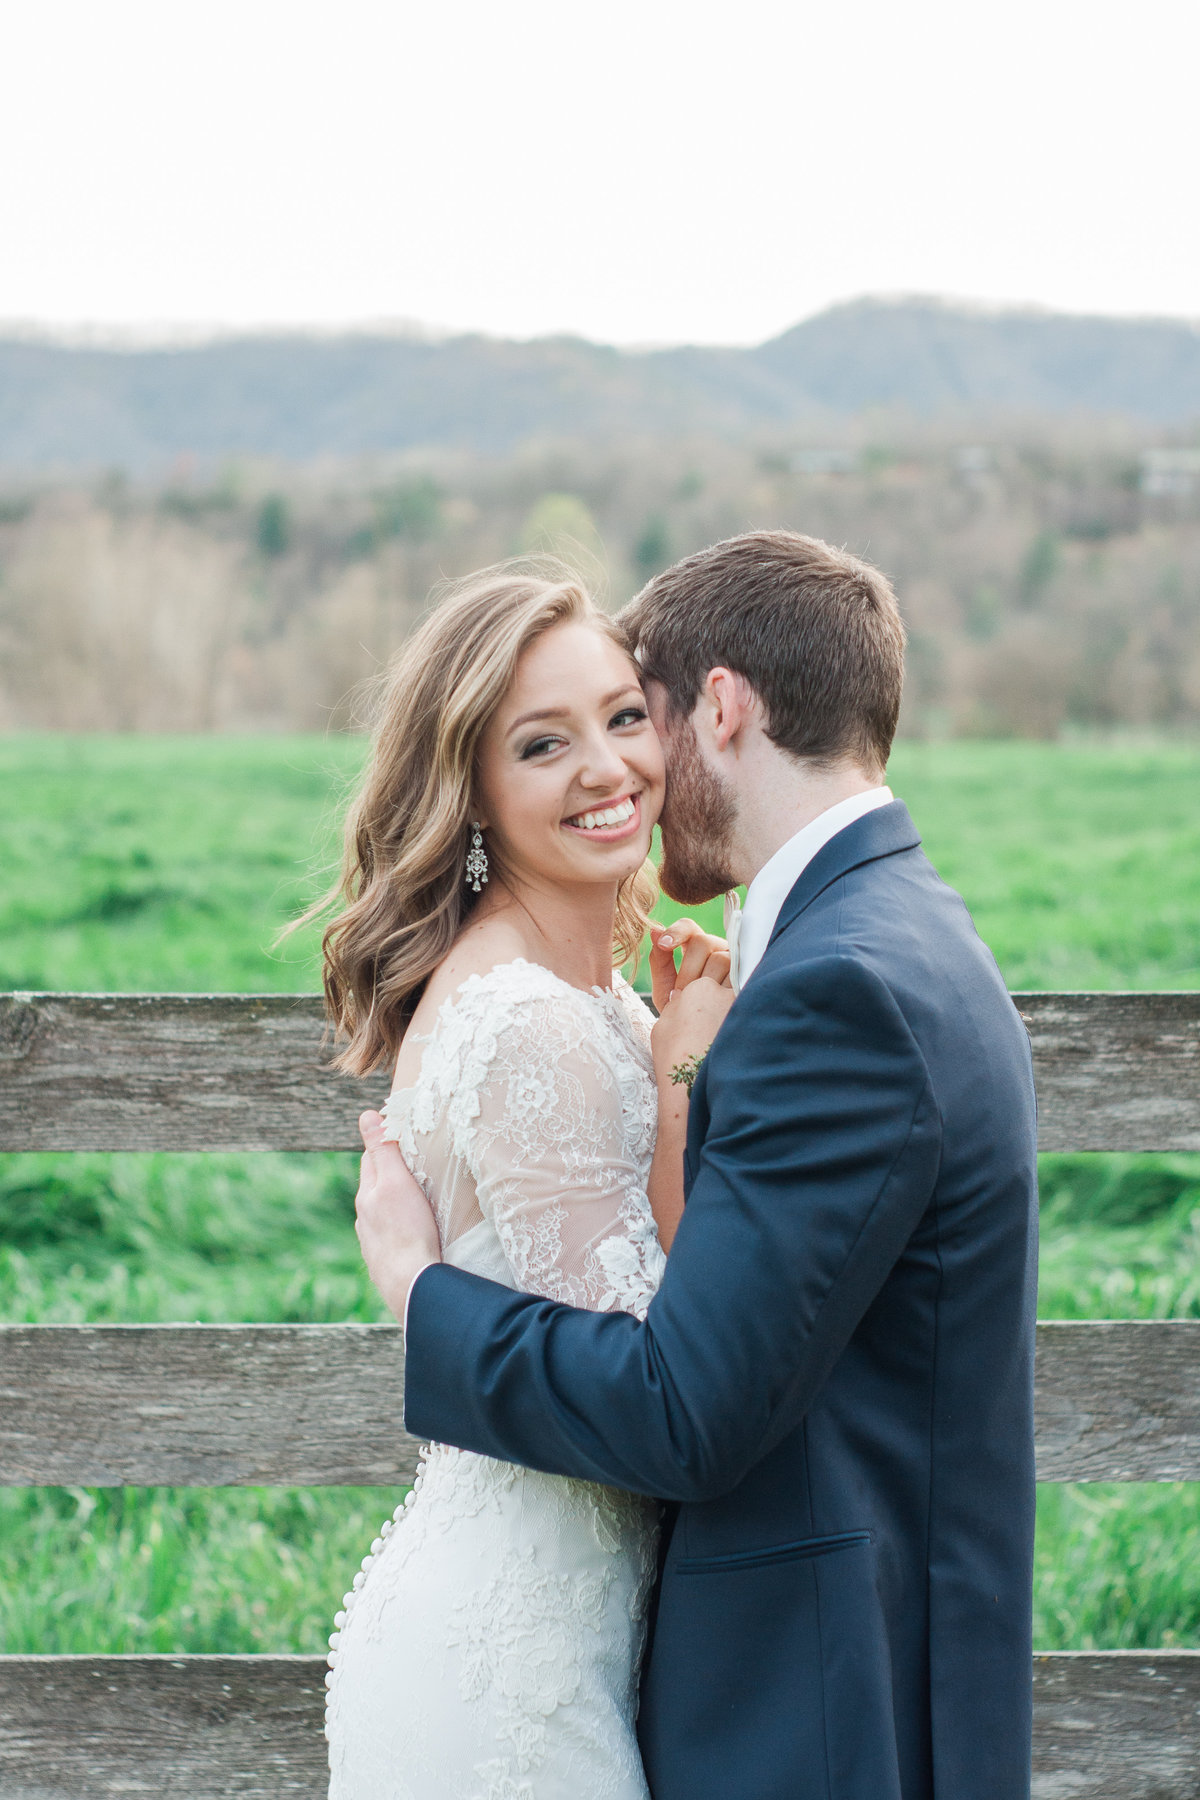 Barn wedding inspiration photographed at Fussell Farm by Boone Photographer Wayfaring Wanderer. Fussell Farm is a gorgeous venue in Millers Creek, NC.